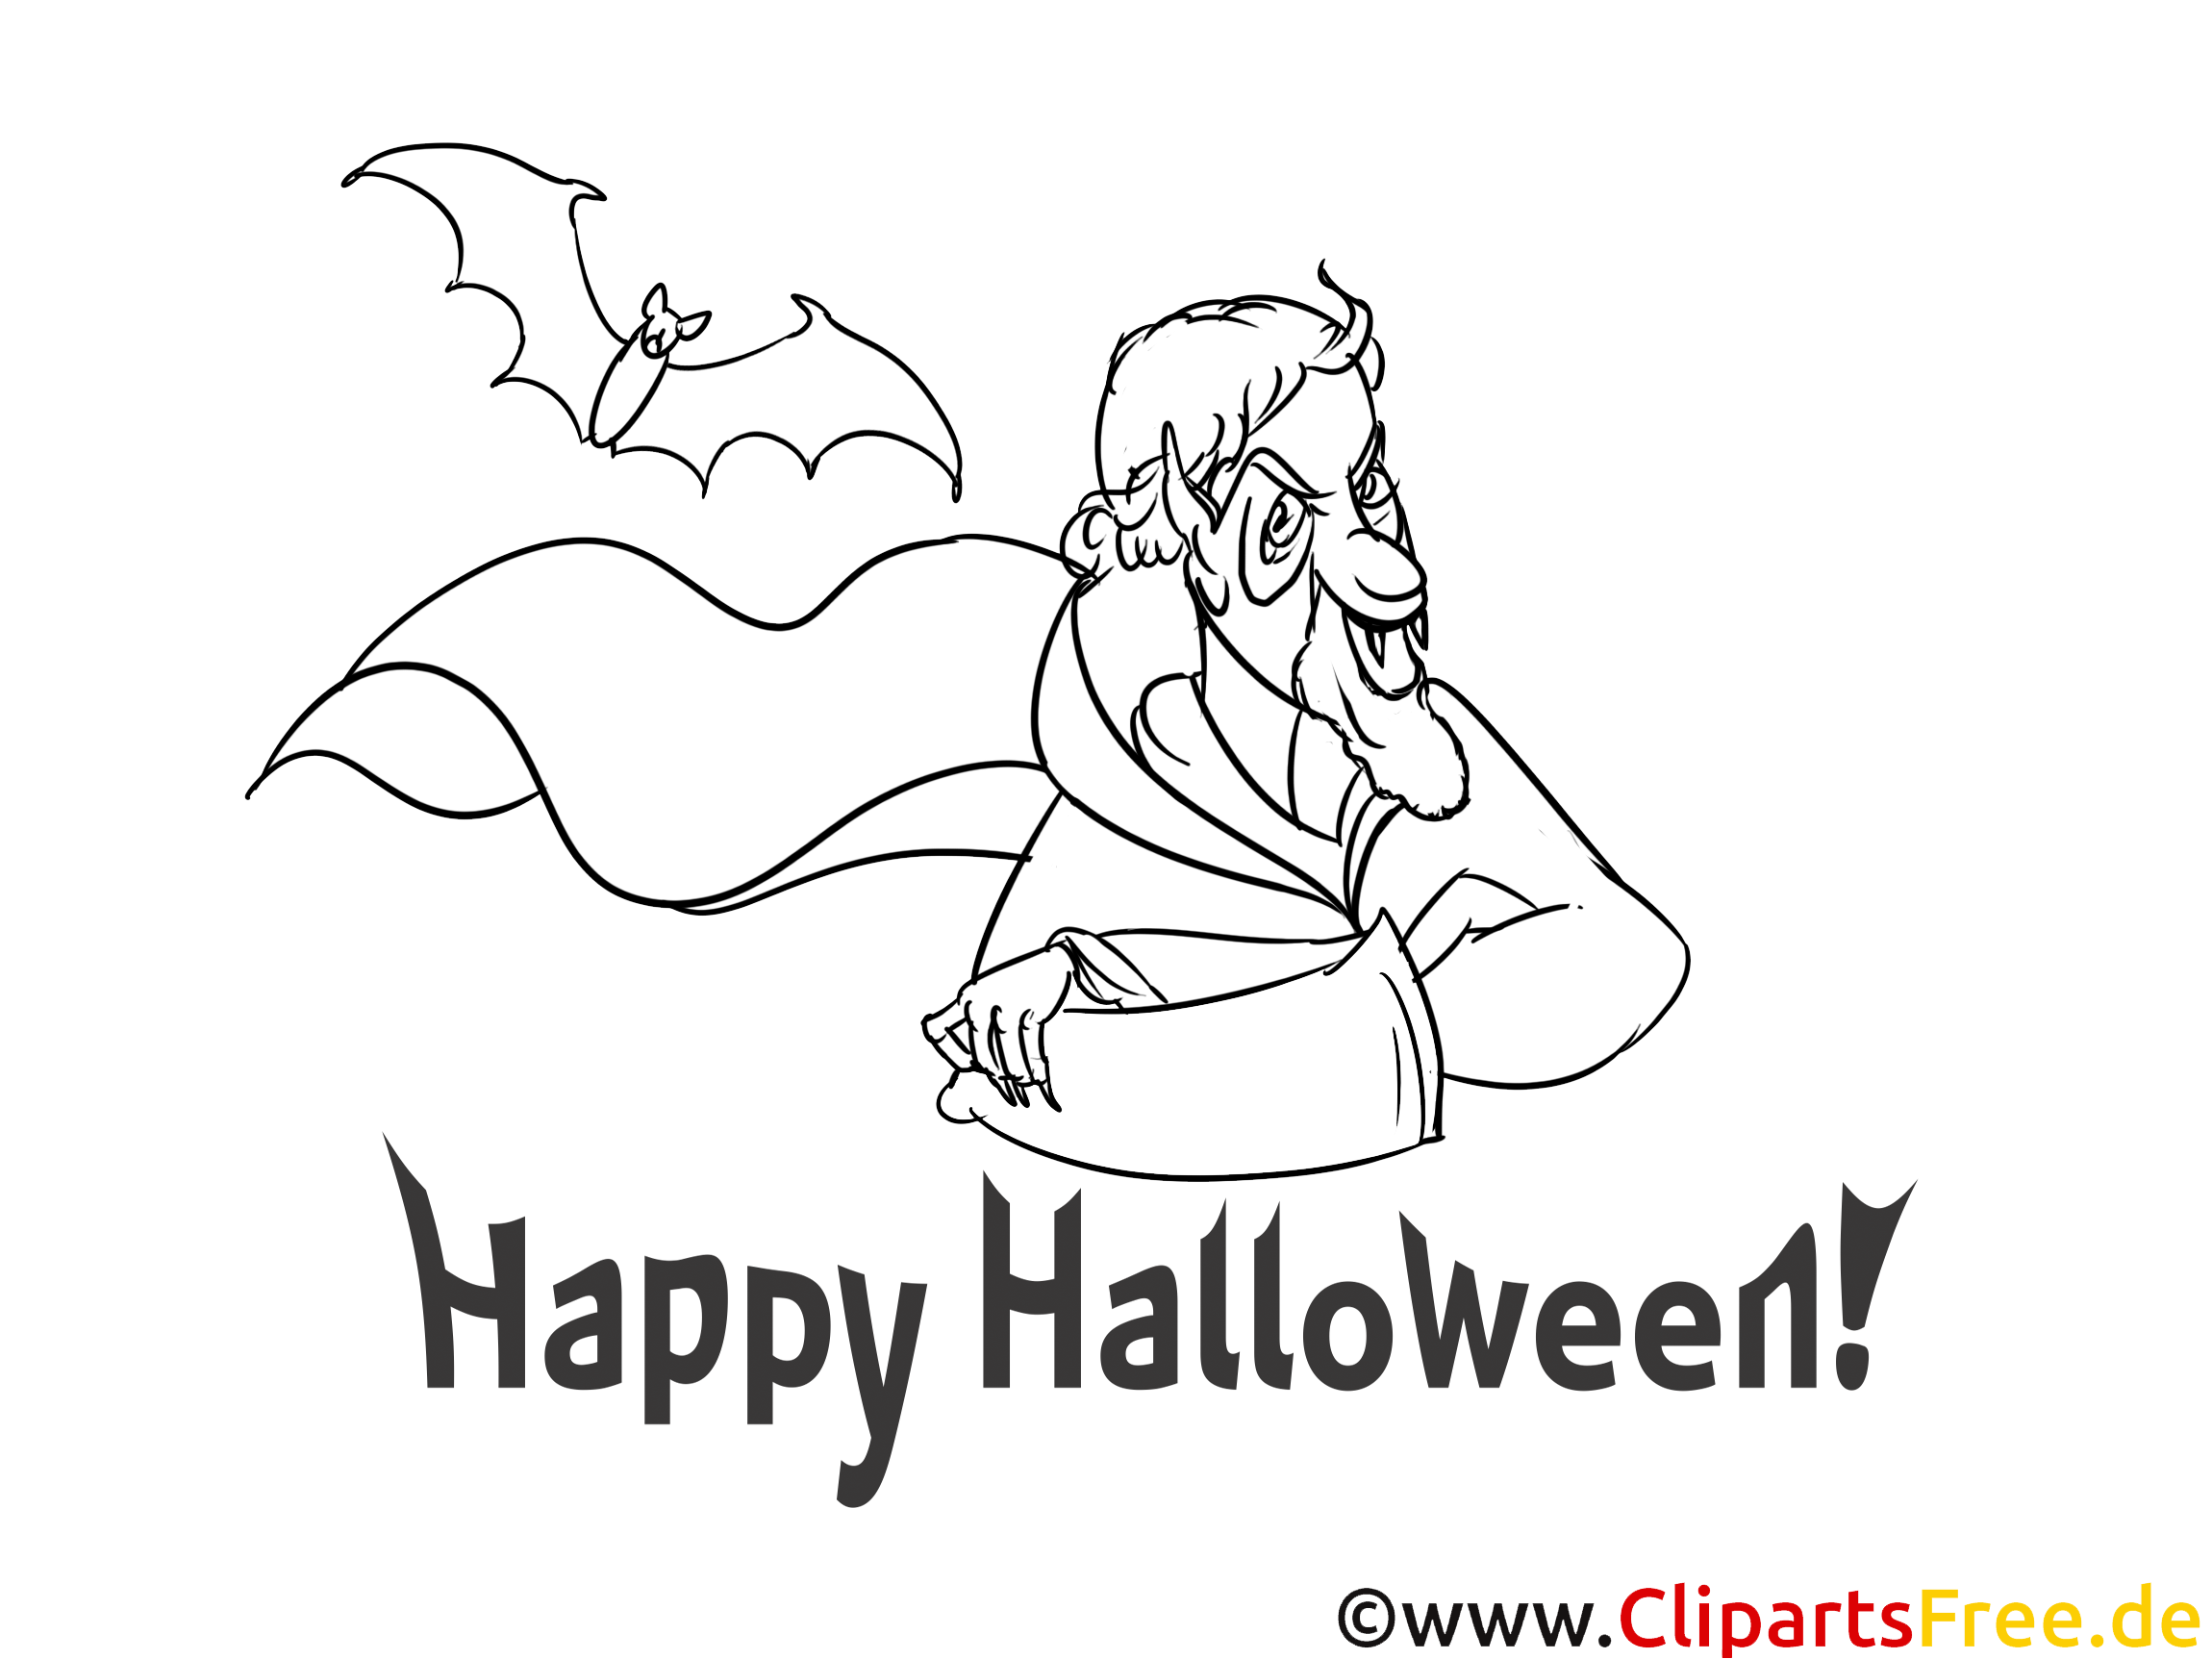 Funny Coloring Sheets for Halloween